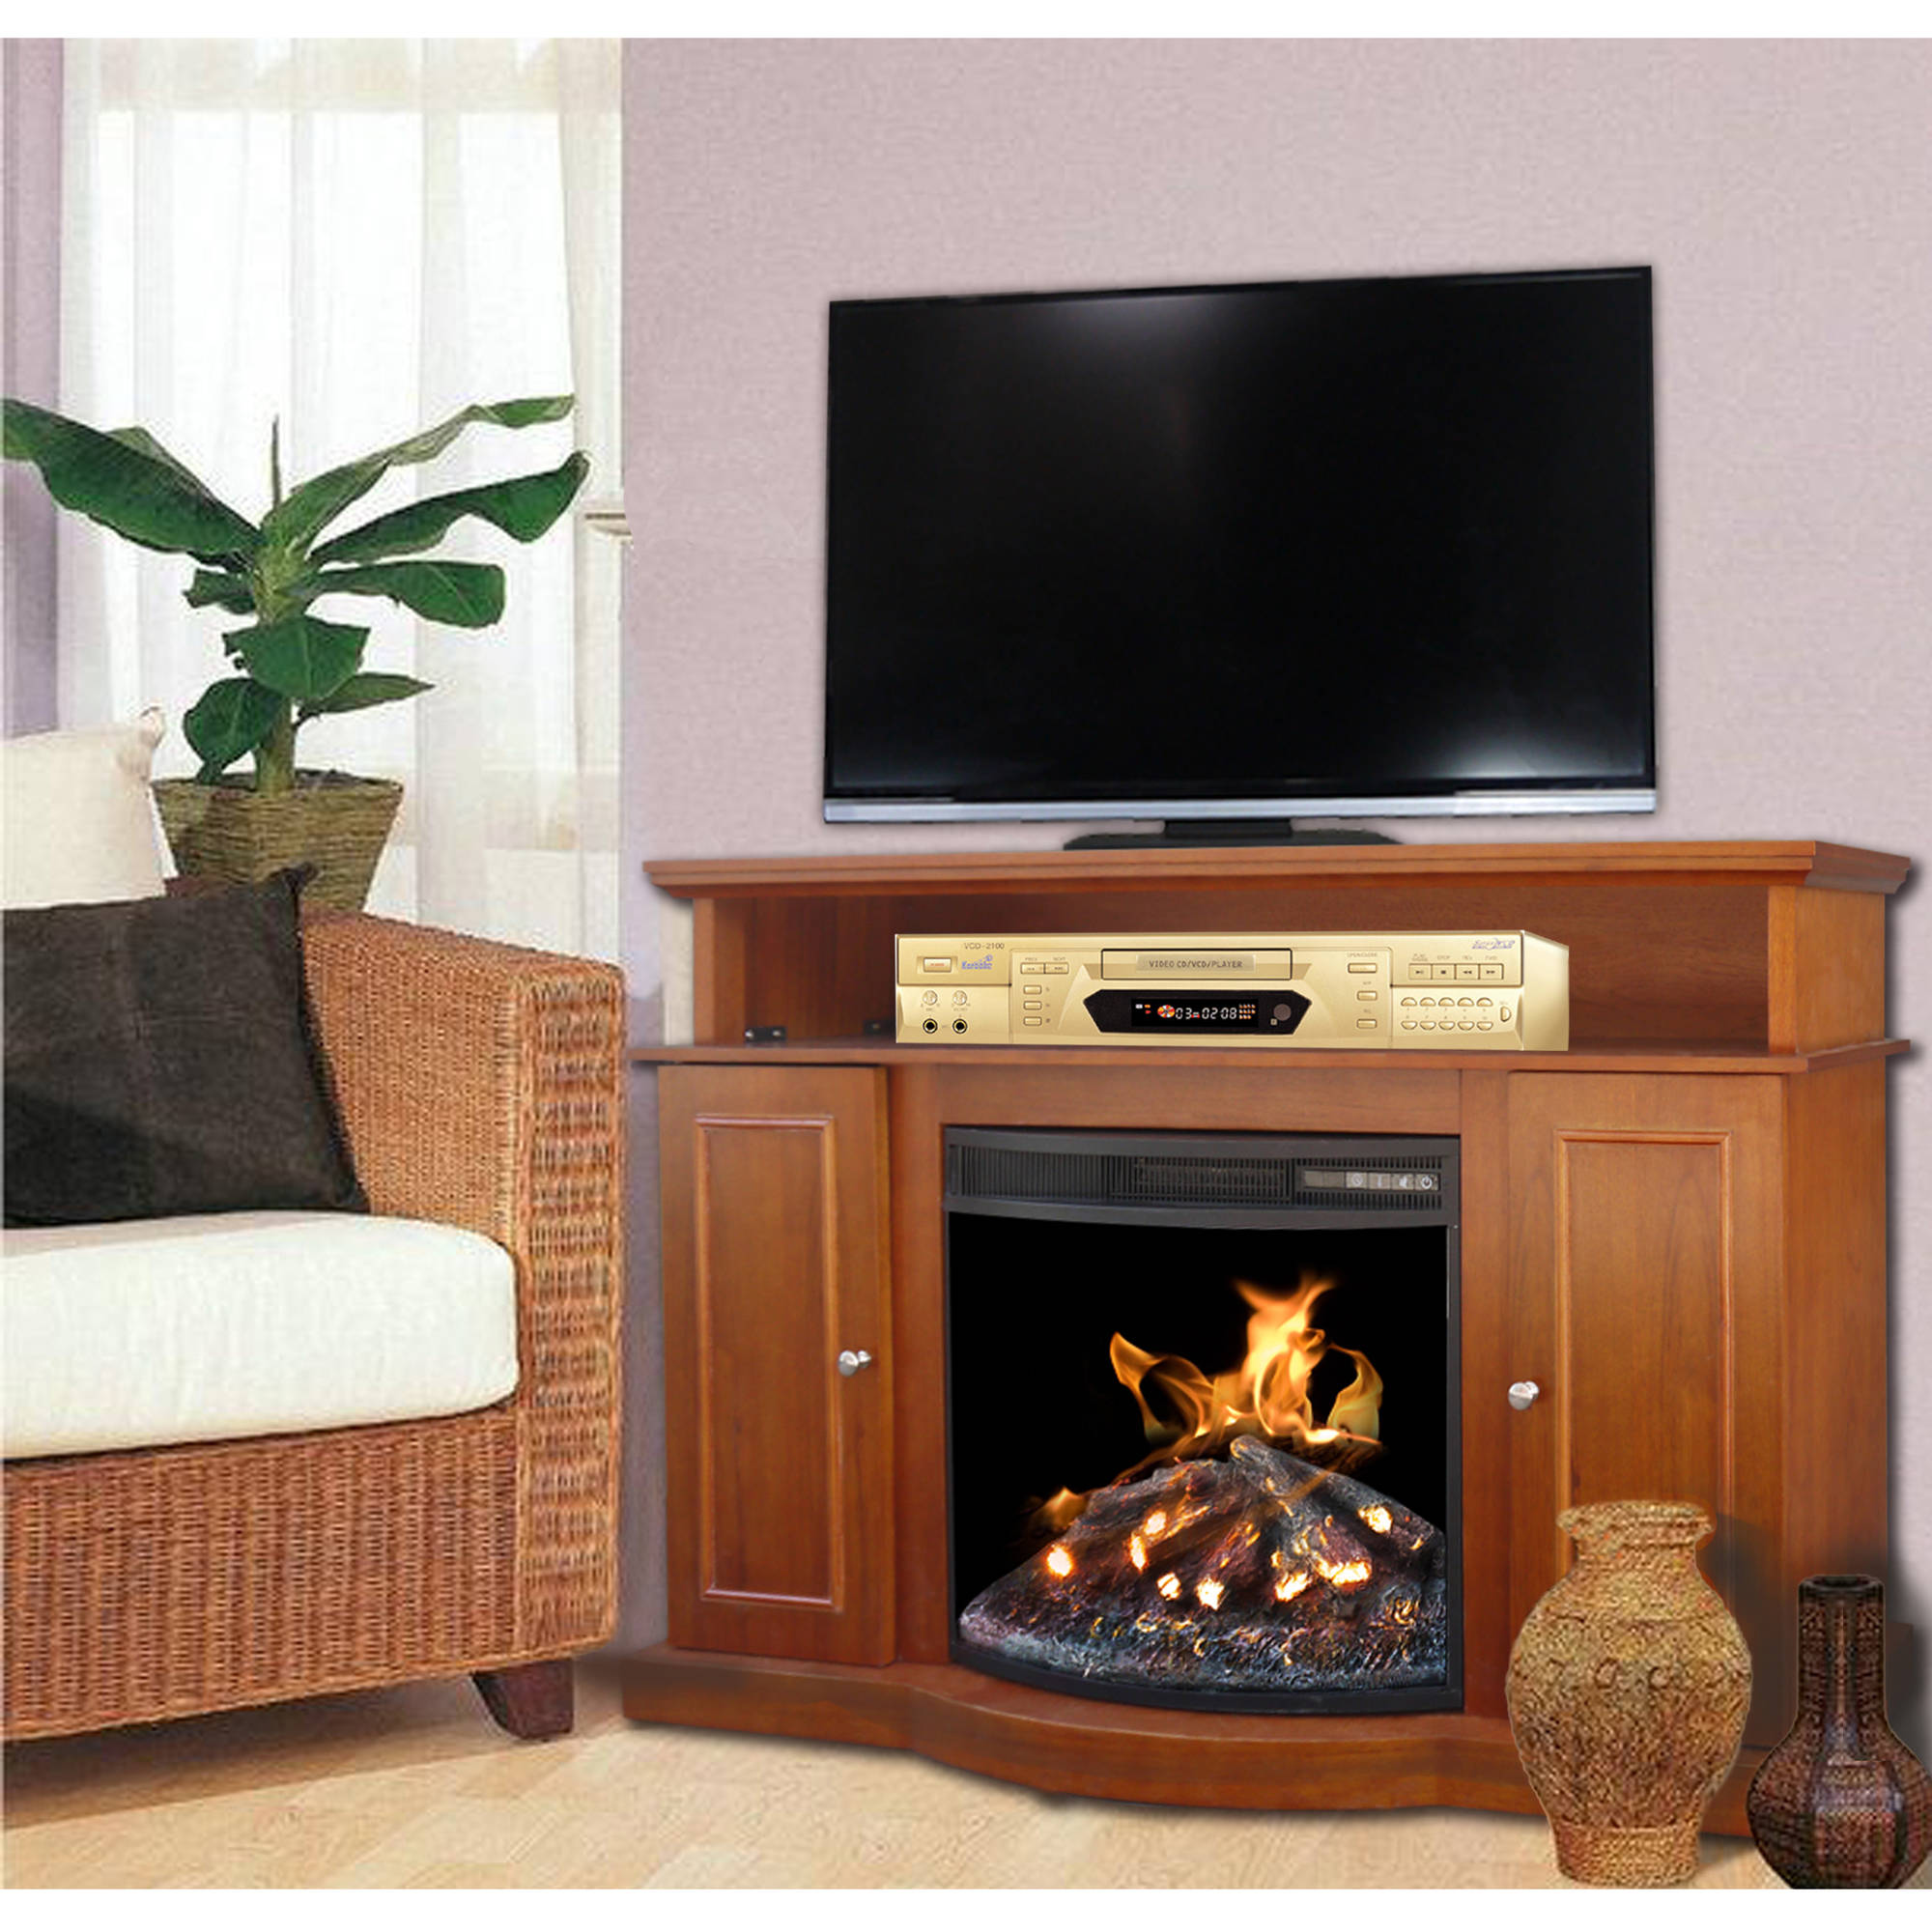 "Decor Media Fireplace, Walnut, 53"" Mantle For TV's up to 60"""